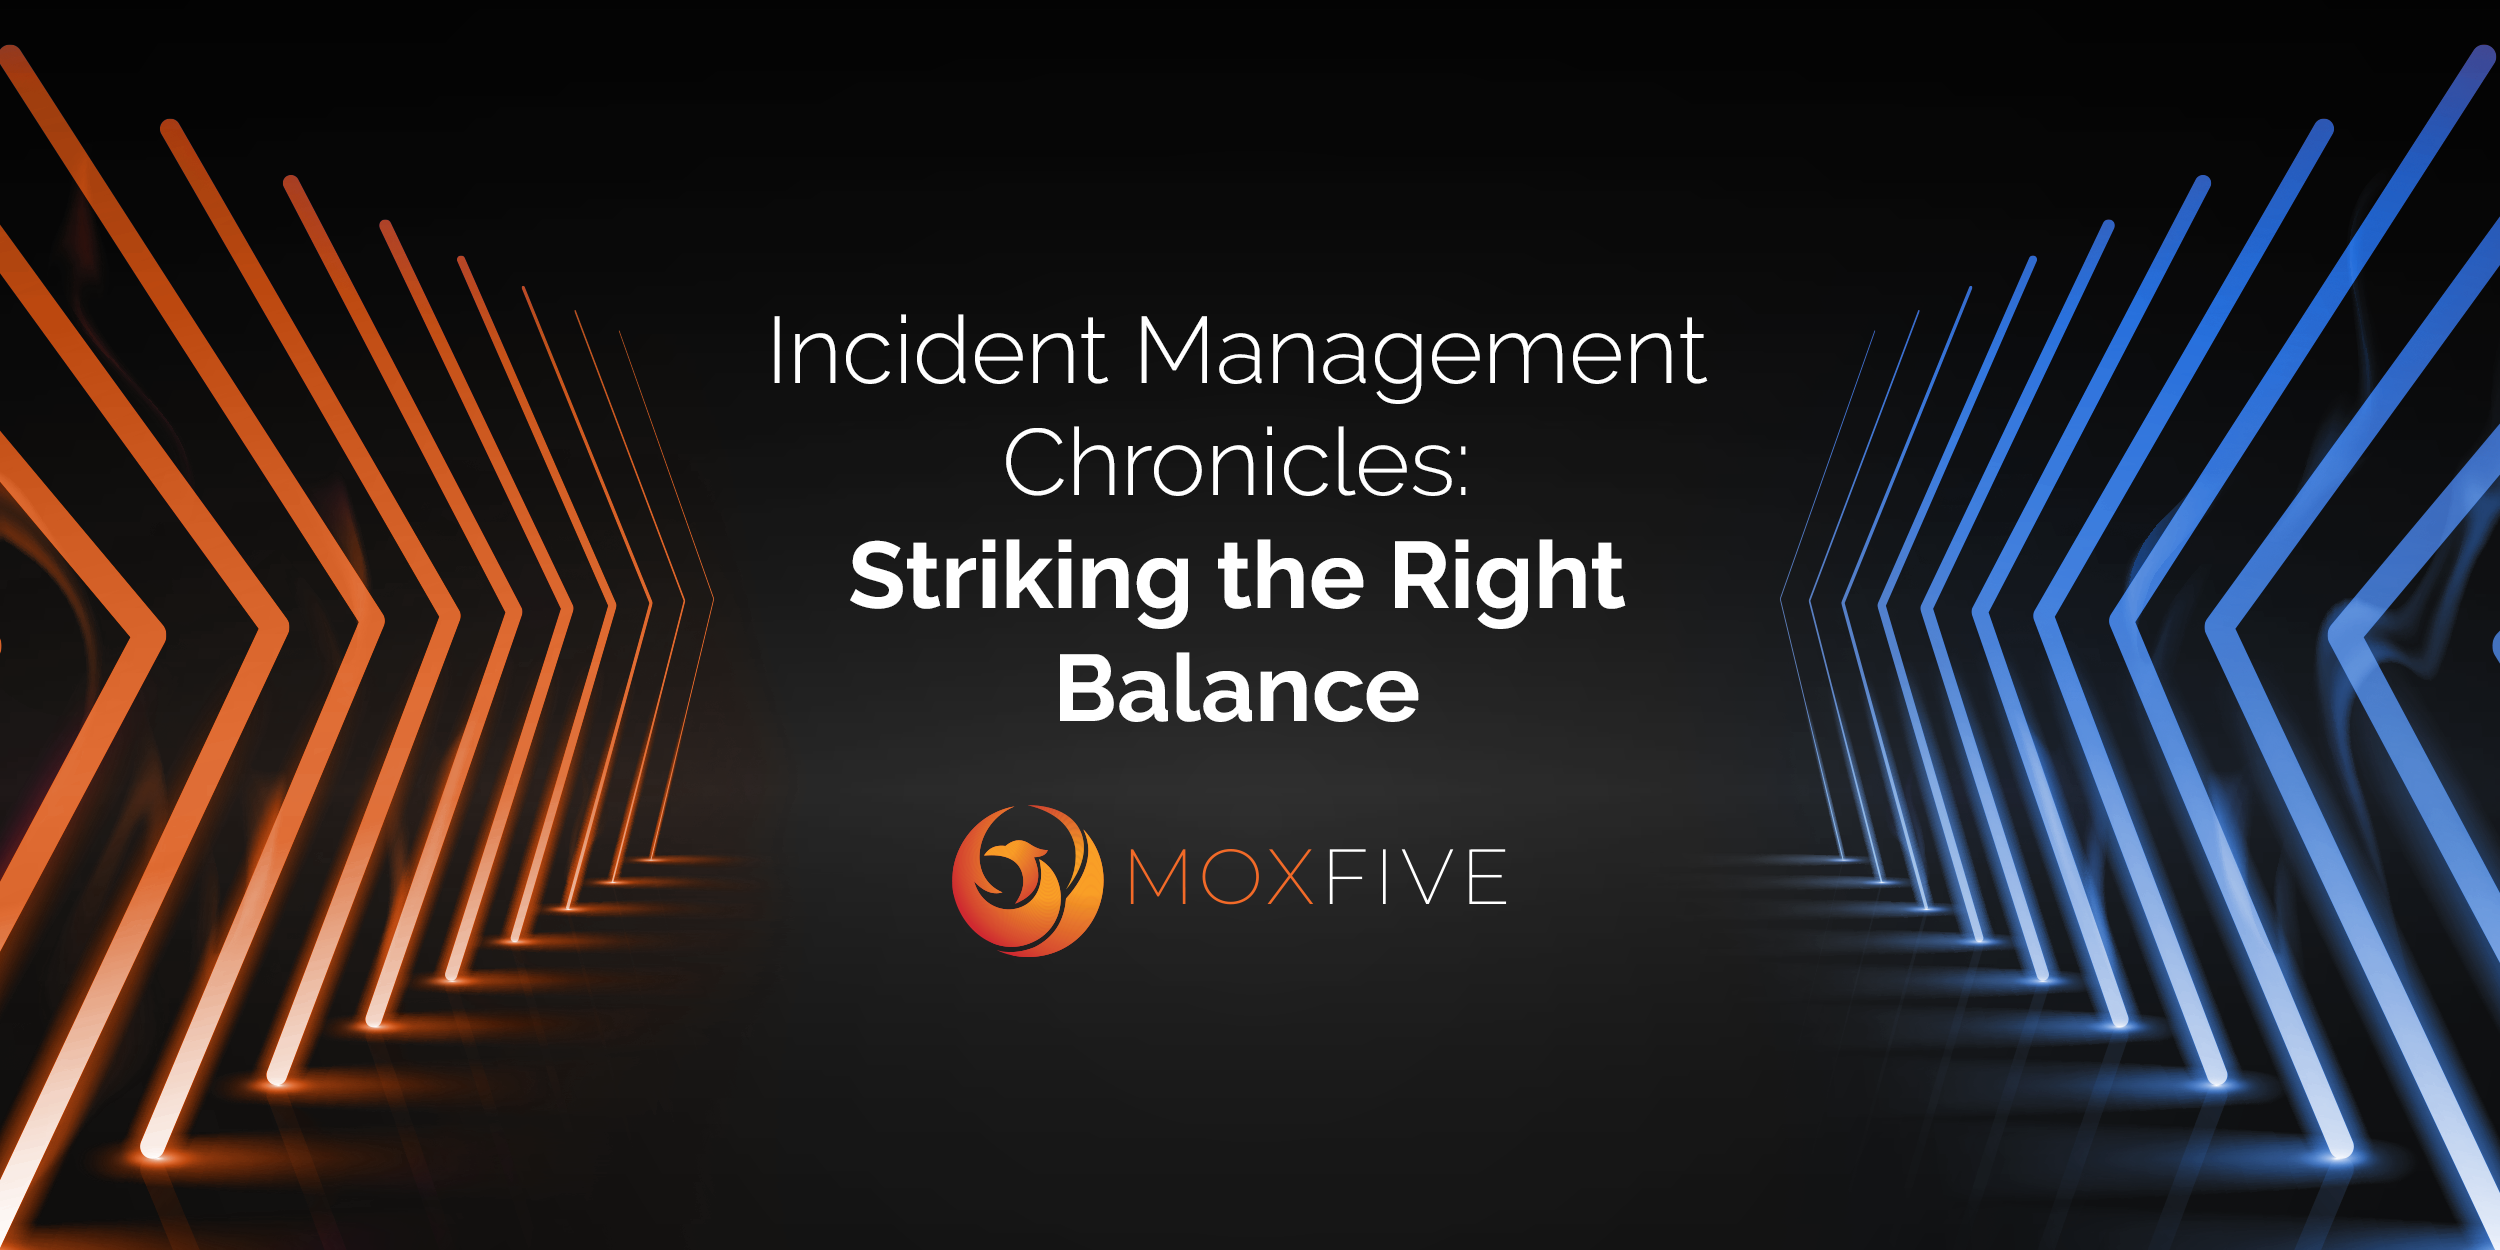 Incident Management Chronicles: Striking The Right Balance